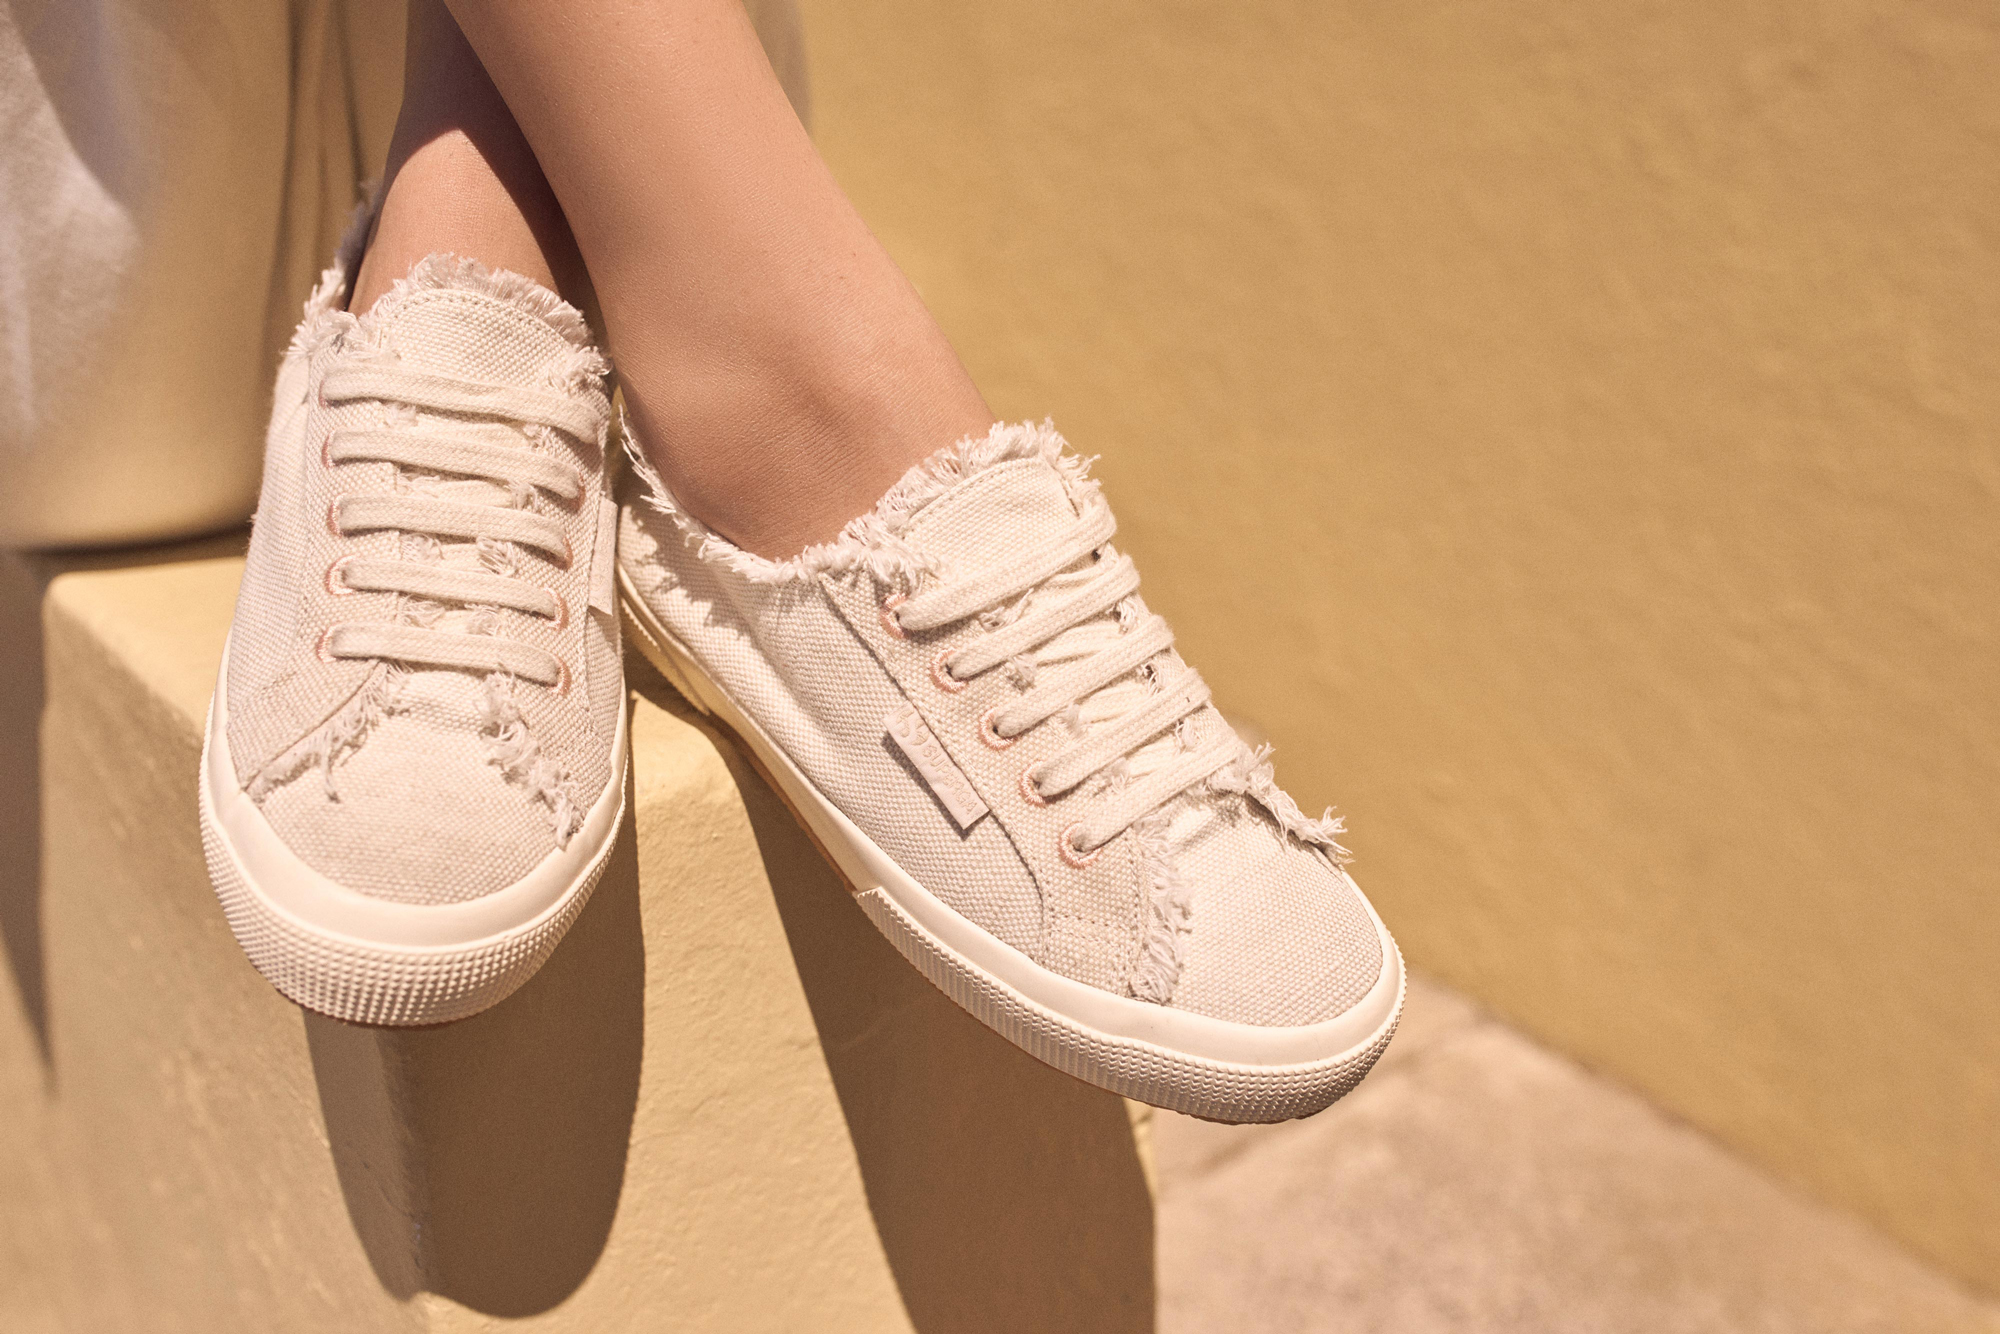 The Superga x Aje Low Platform Sneaker